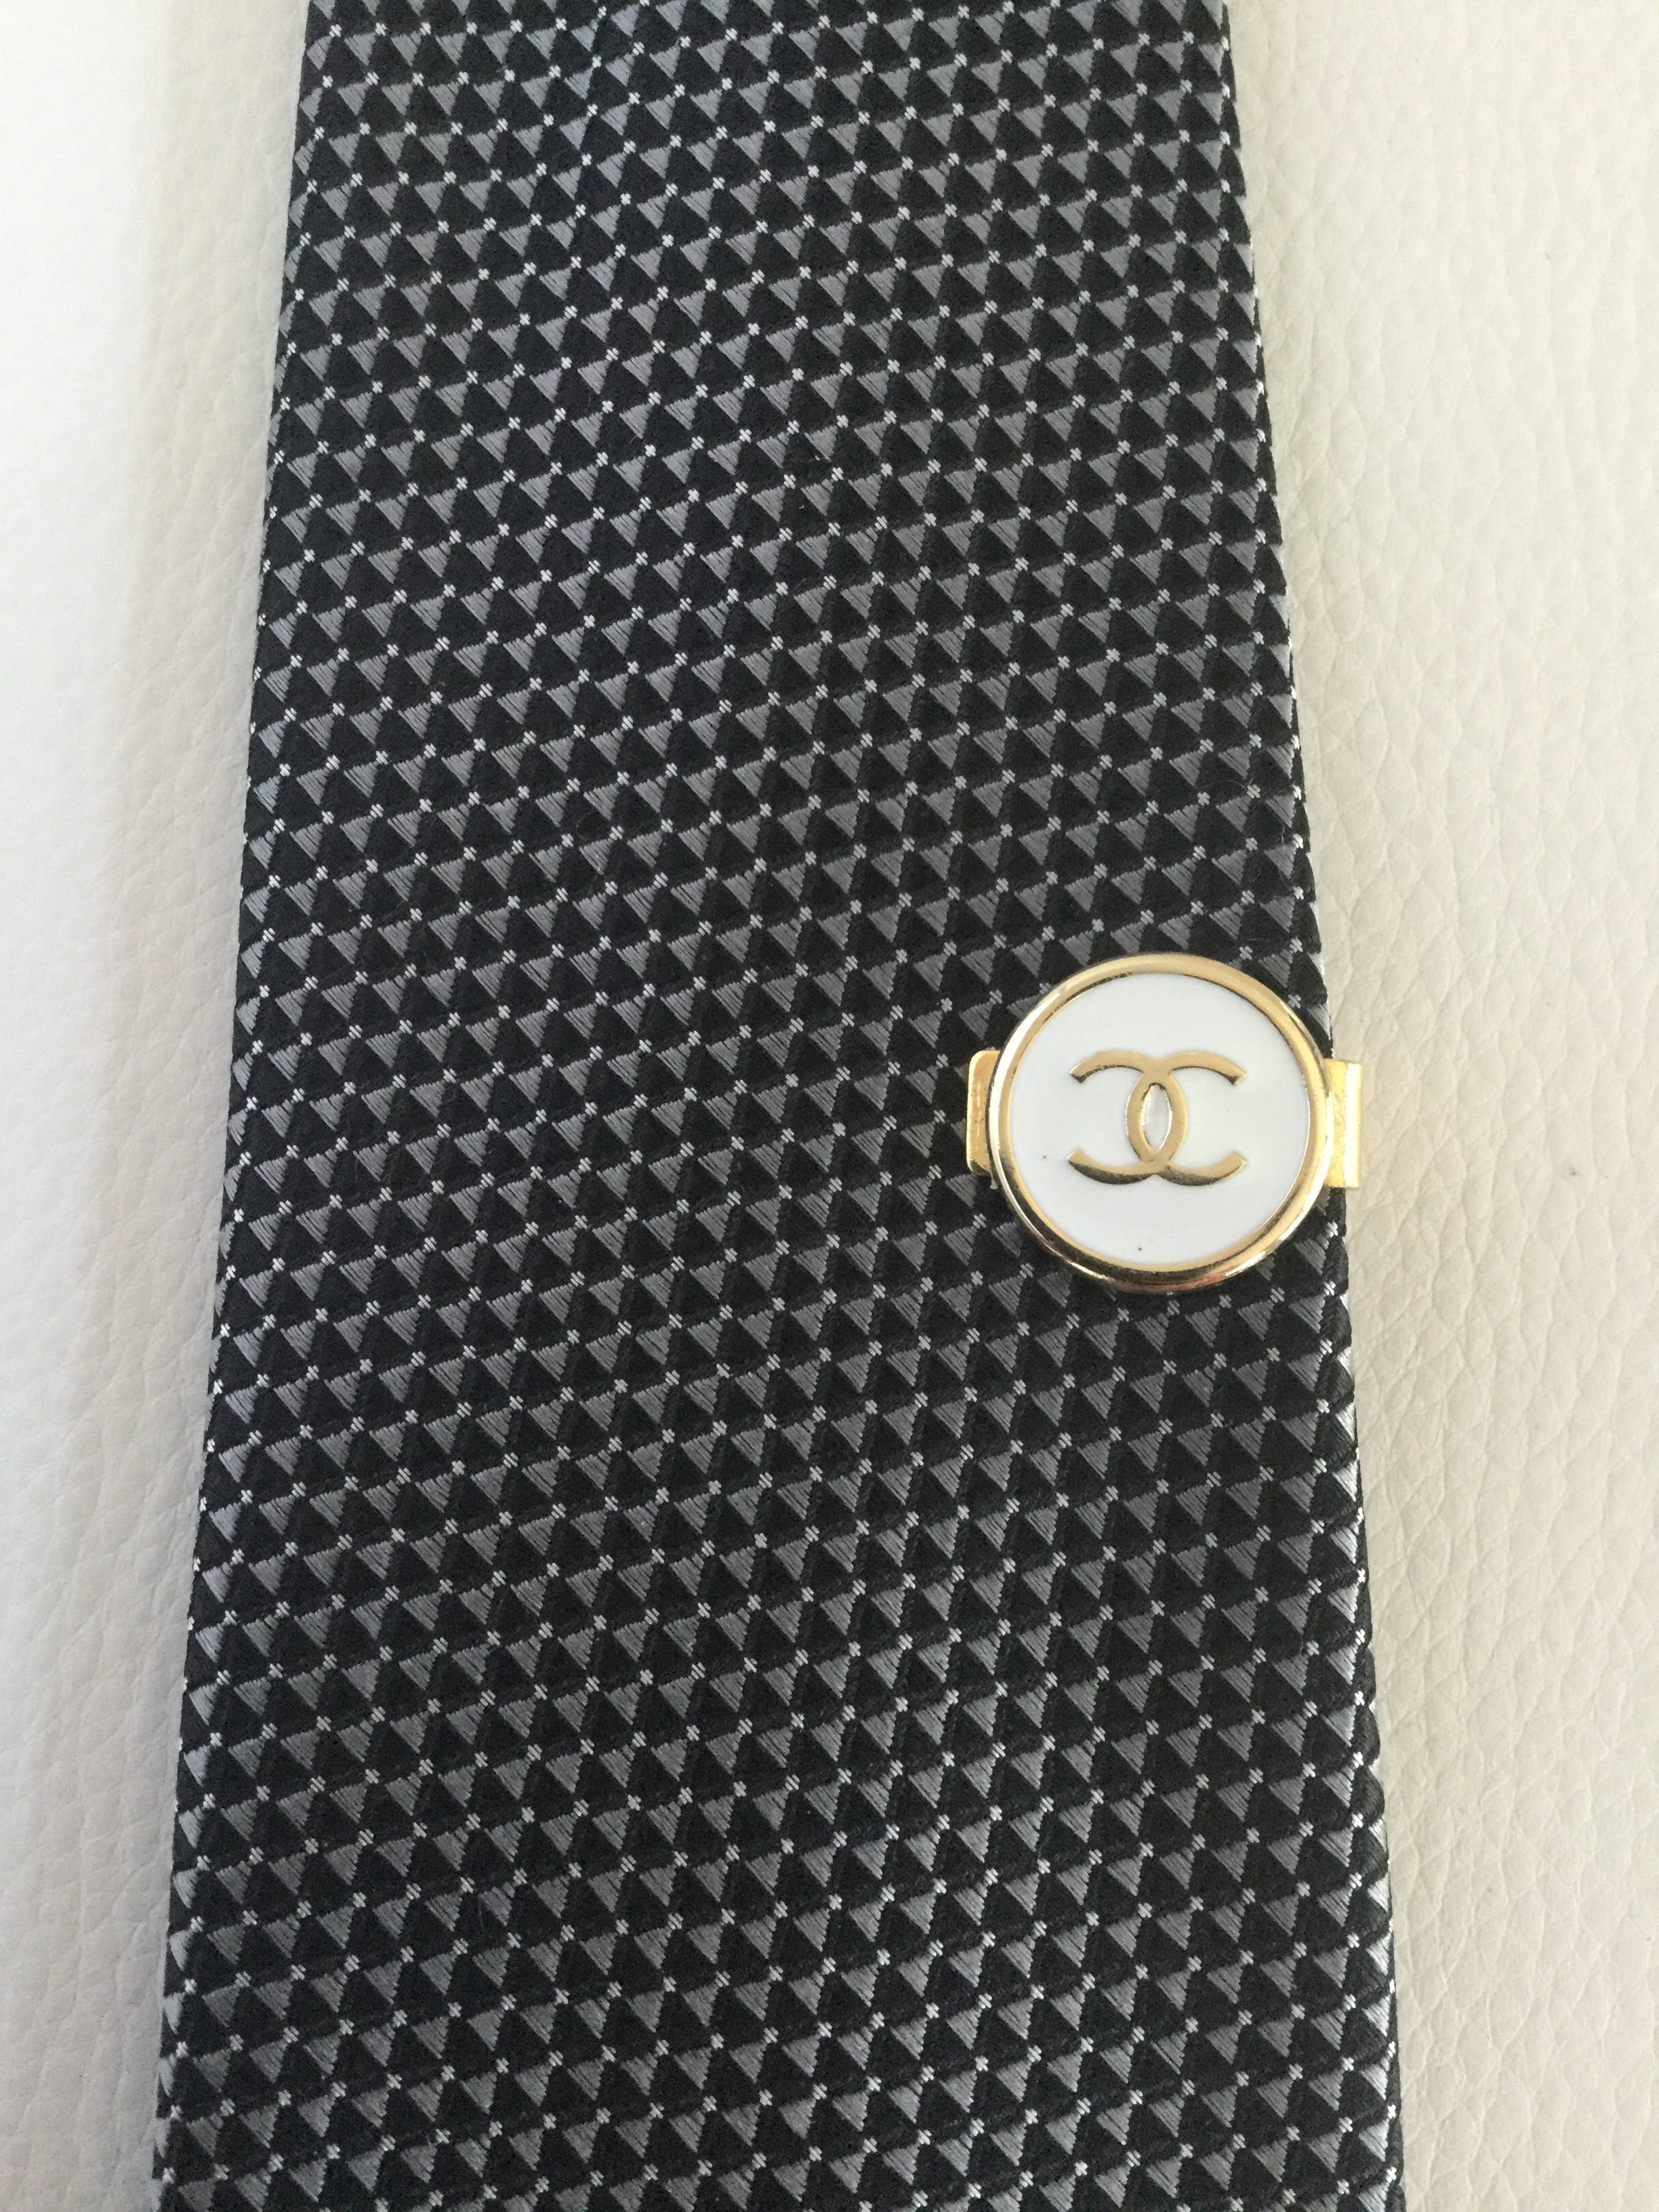 Chanel White and Gold Tie Clip, men's jewelry